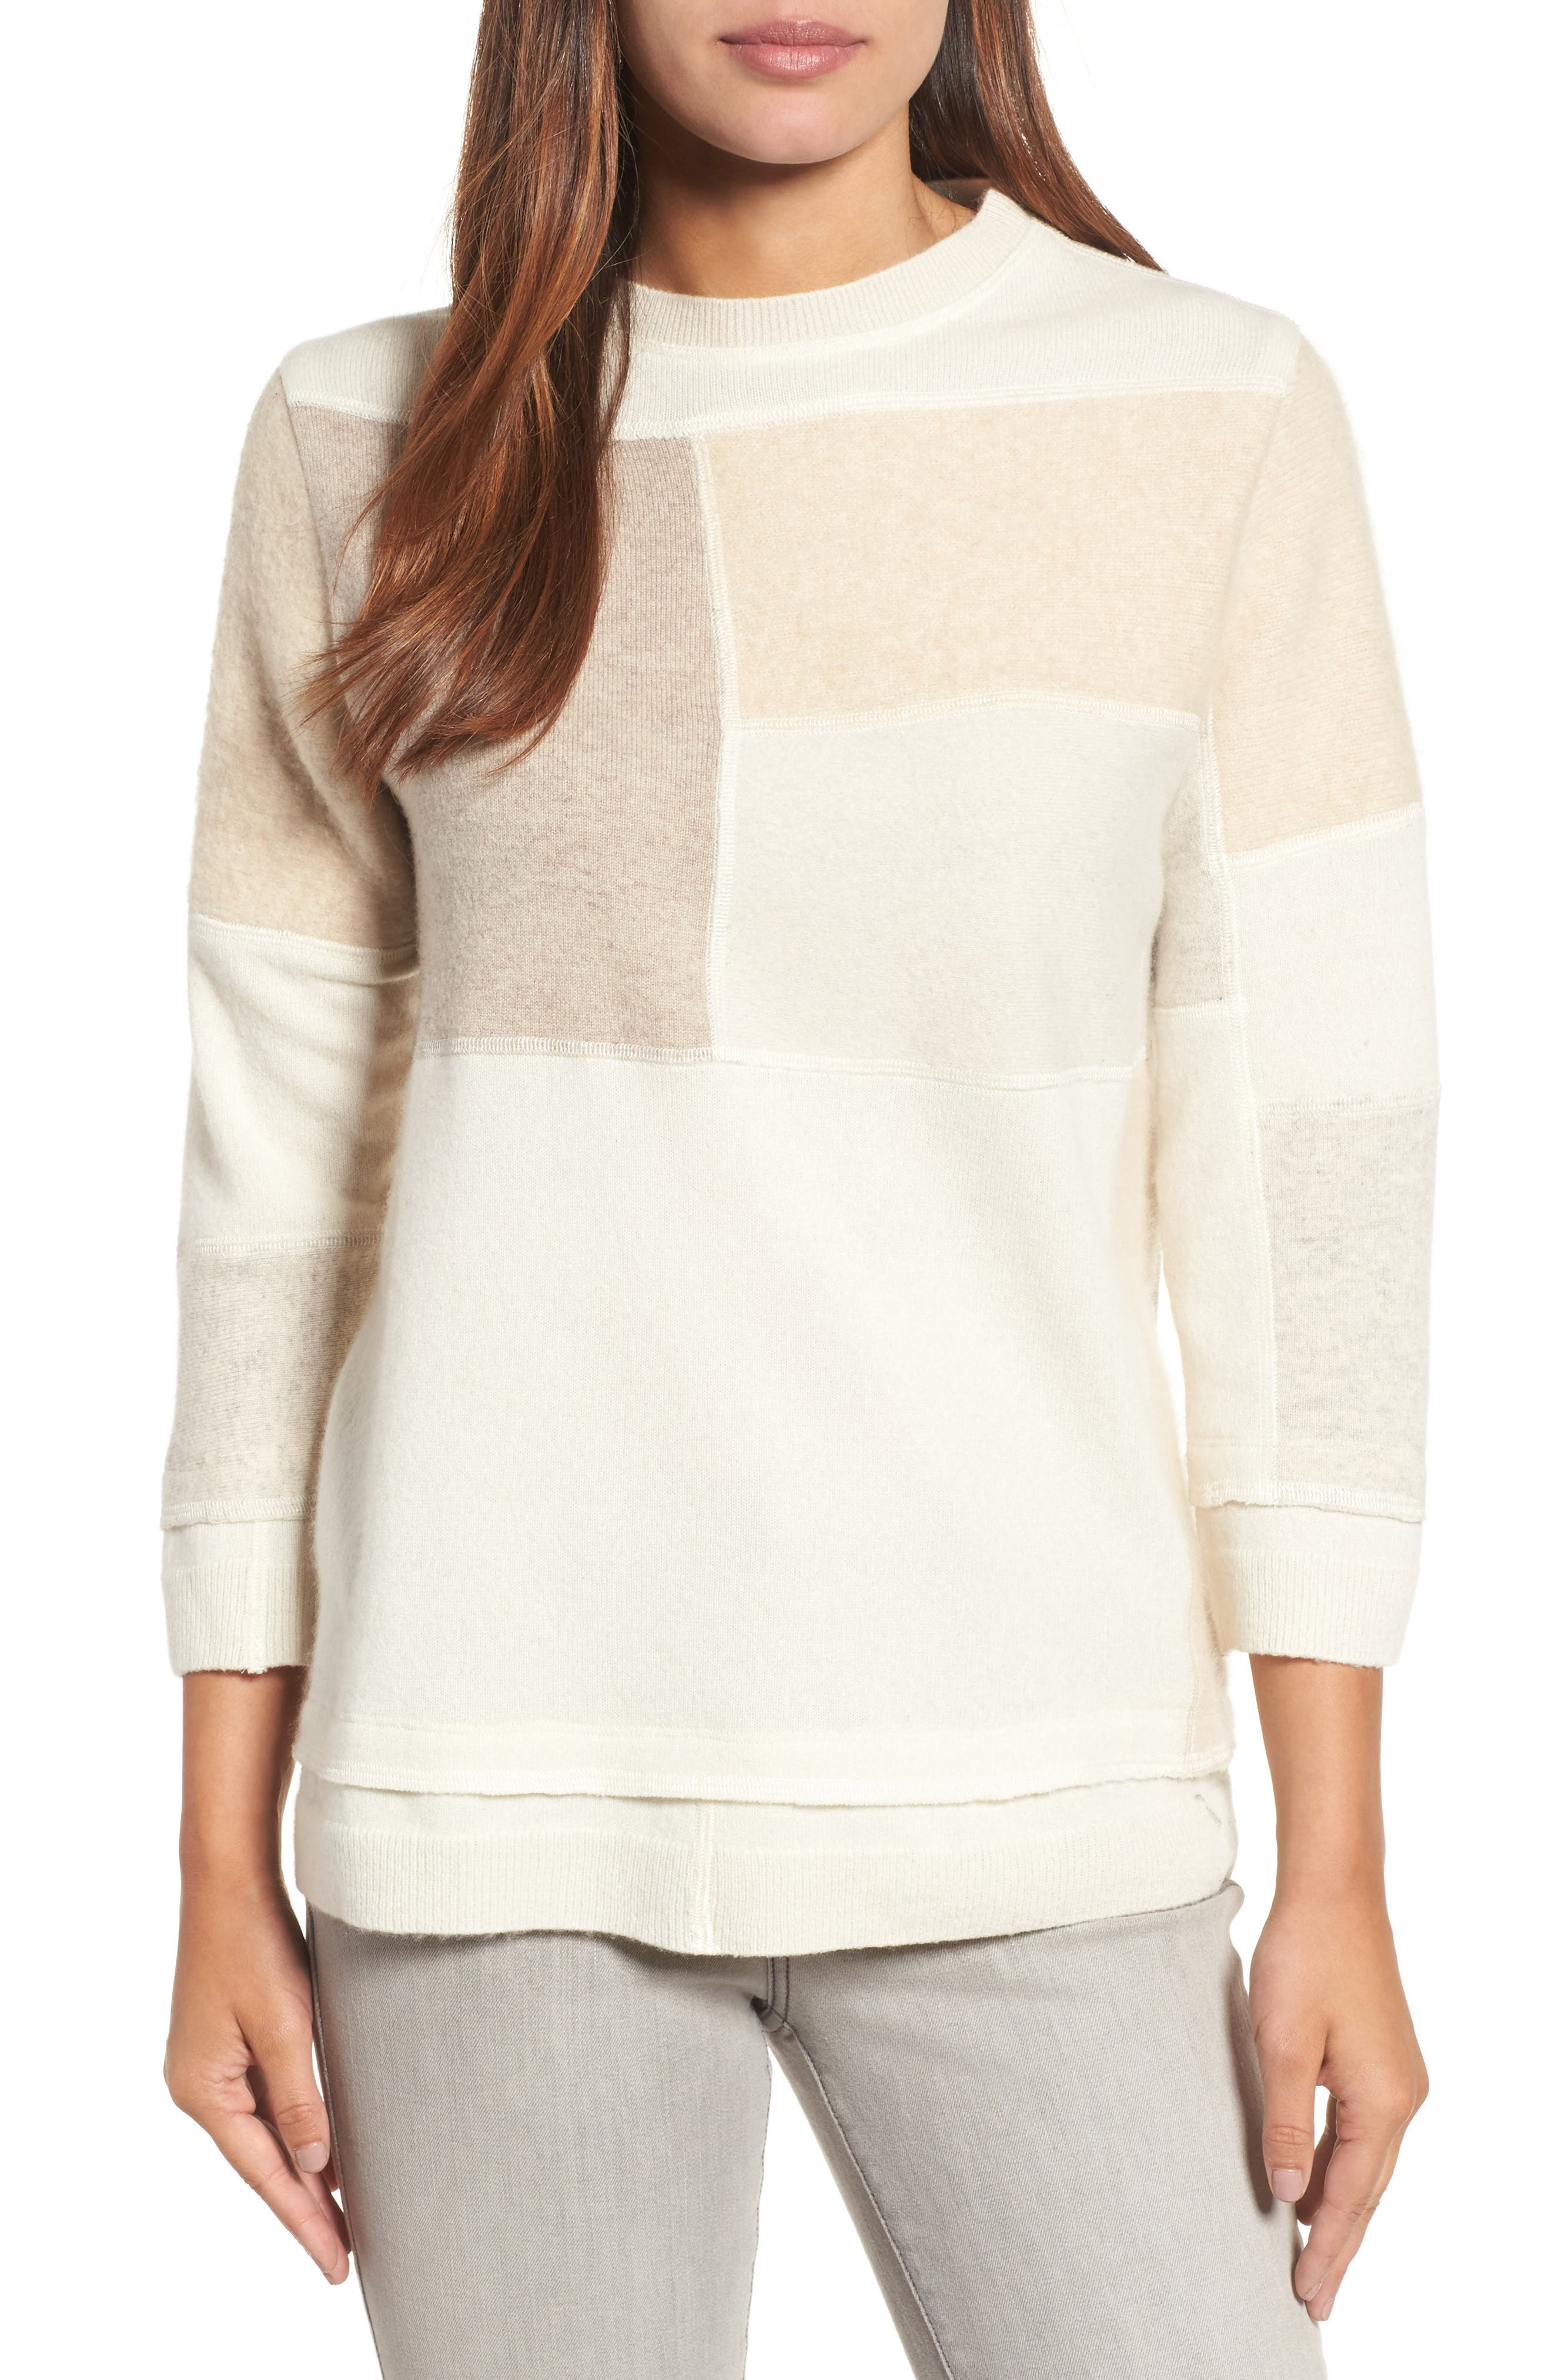 Main Image - Eileen Fisher Colorblock Cashmere Sweater (Nordstrom Exclusive)